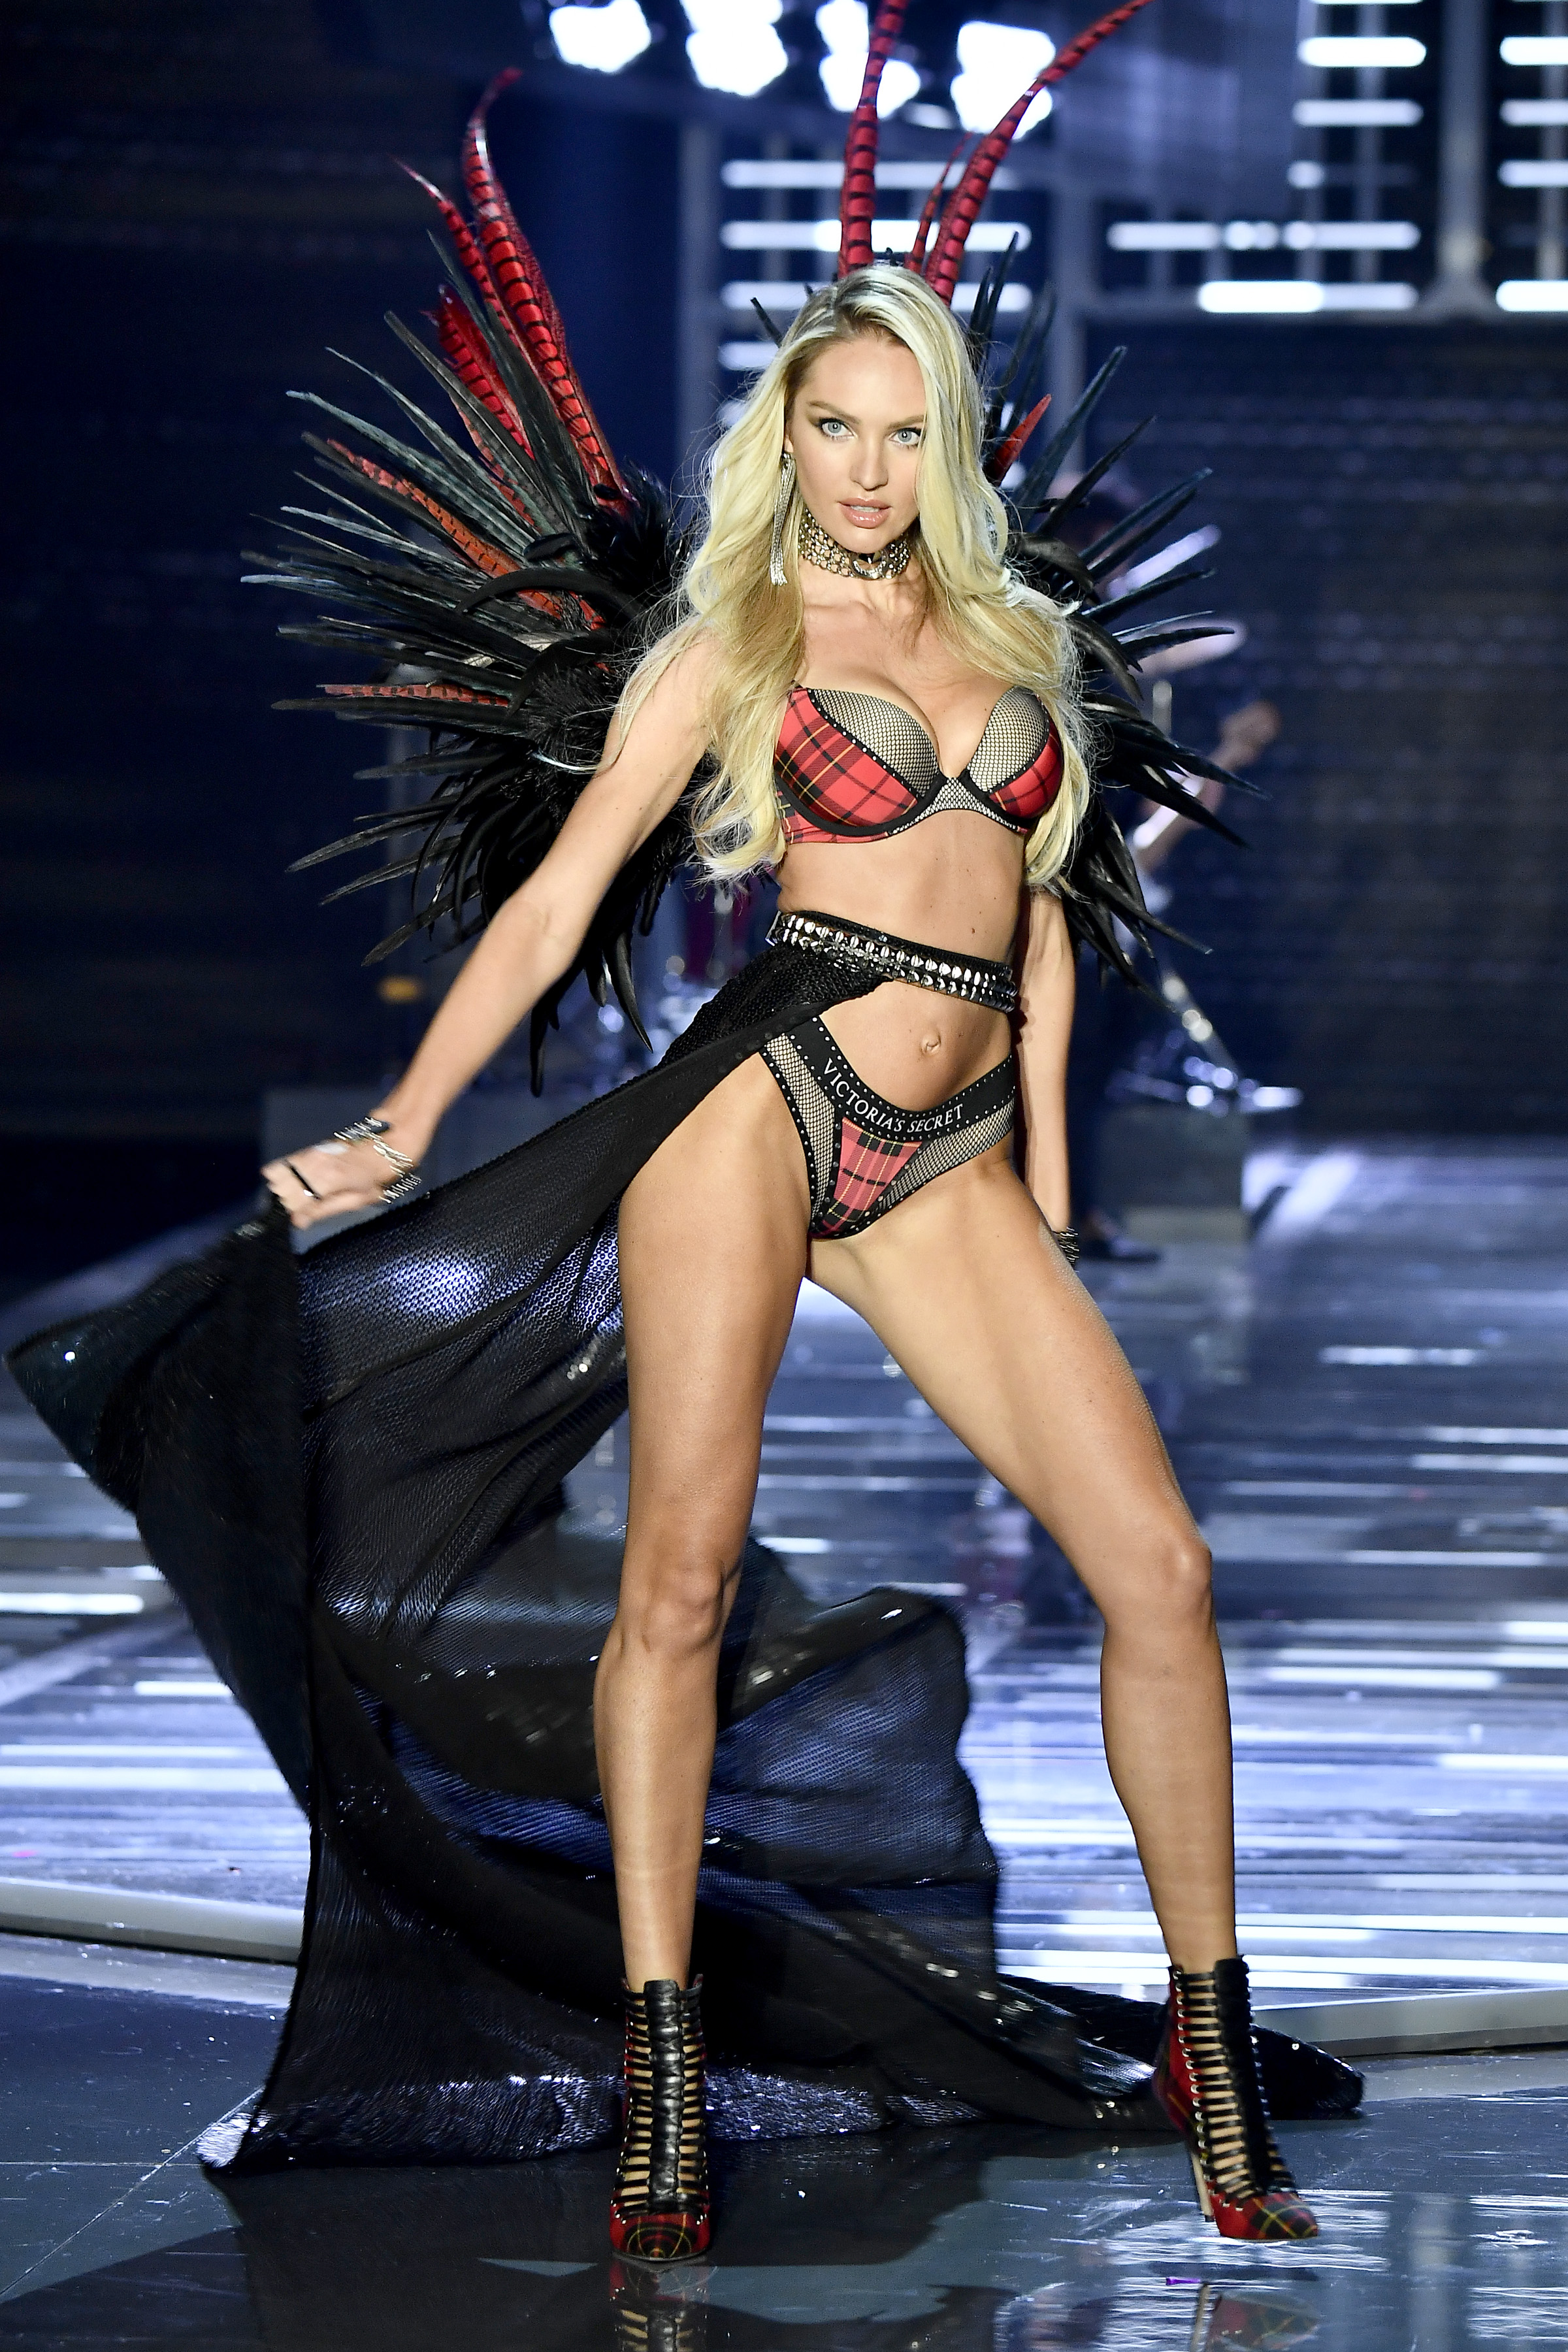 "<p>Along with being one of the world's most beautiful women, <a href=""https://www.instagram.com/angelcandices/"" target=""_blank"" draggable=""false"">Victoria's Secret angel Candice Swanepoel </a>can now add the title of being the most influential lingerie model on Instagram to her already packed resume.<br /> <br /> A yearly review conducted by<a href=""https://www.bluebella.com/"" target=""_blank""> lingerie company Bluebella</a>, has revealed that the South-African model's 11.8 million followers and average of 300,000 likes per post have earned her the number one spot on the list.</p> <p>As part of the current crop of VS angels, the pregnant mother-of-one has transformed her runway success to the digital world, with her reportedly able to earn up to $87,000 for a sponsored post.</p> <p>The blonde bombshell isn't the only model whose smalls have helped her reign supreme on social media. British model and former angel Rosie Huntington Whiteley and burlesque bombshell, Dita Von Teese, also made the top ten.</p> <p>Click through to see the lingerie models who are creating the most buzz on Instagram.</p>"